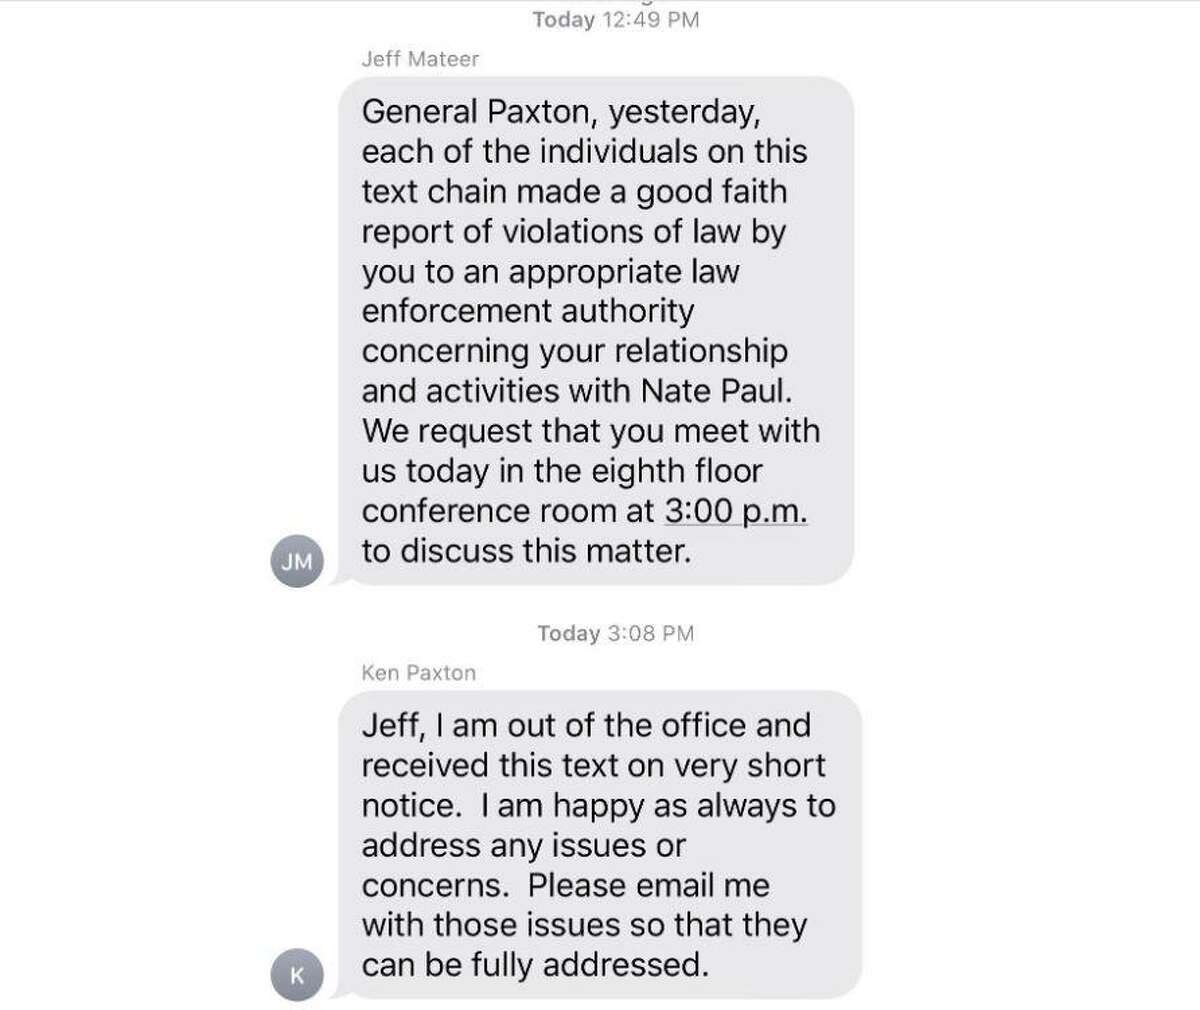 This is the text message with which seven high-ranking officials notified Texas Attorney General Ken Paxton of their criminal complaint against him.